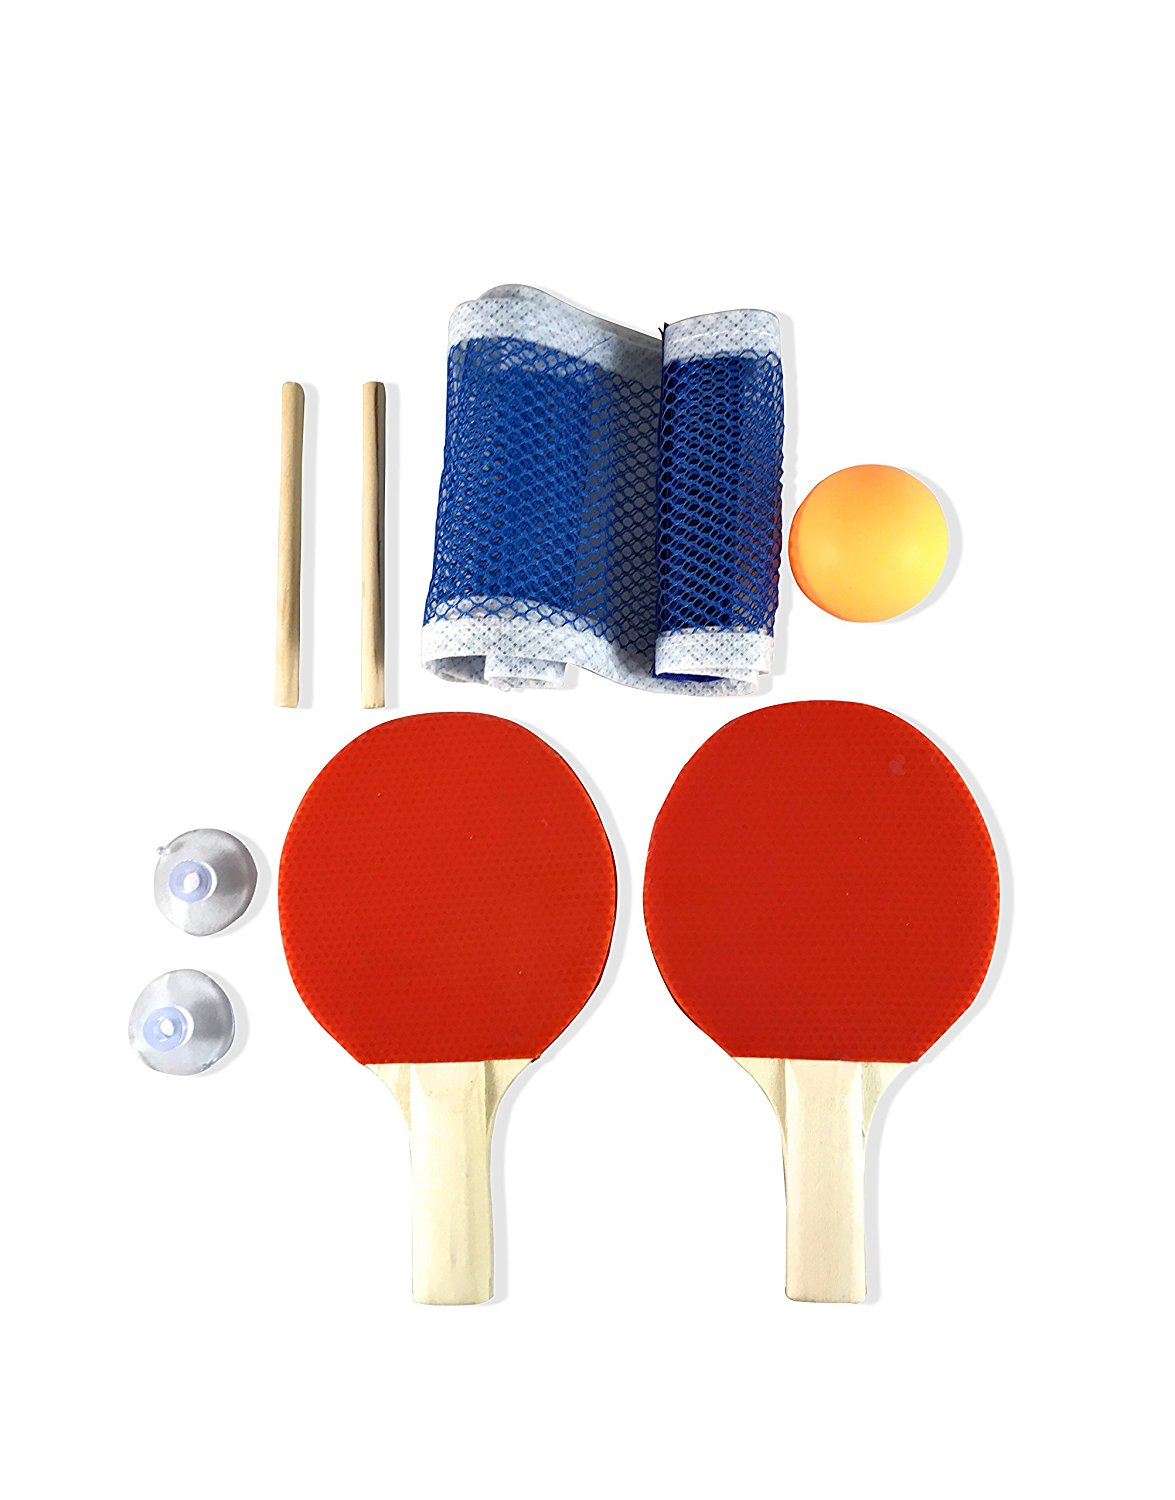 Mini Ping Pong Paddle Set - Indoor Table Tennis Racket Set by MightySpin - Great Portable Sport For Kids